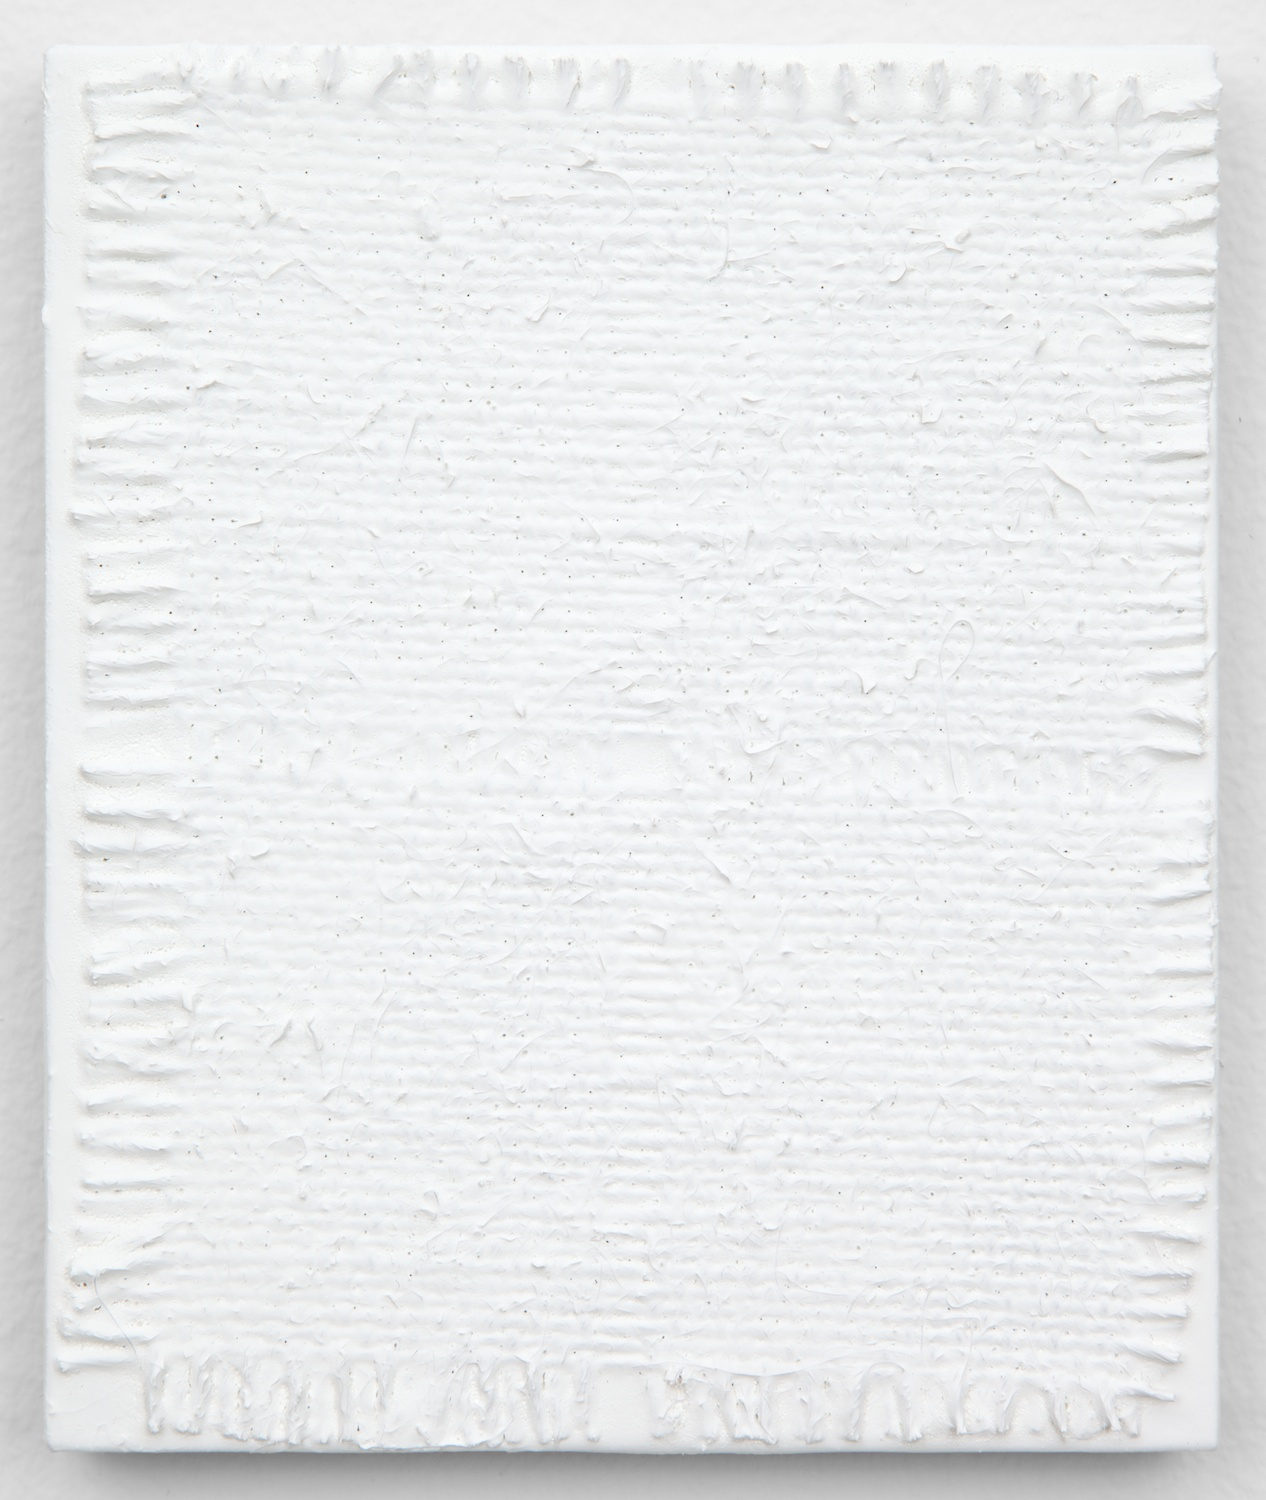 Michelle Grabner  Untitled  2013 Burlap and gesso on panel 6h x 5w in MGrab360